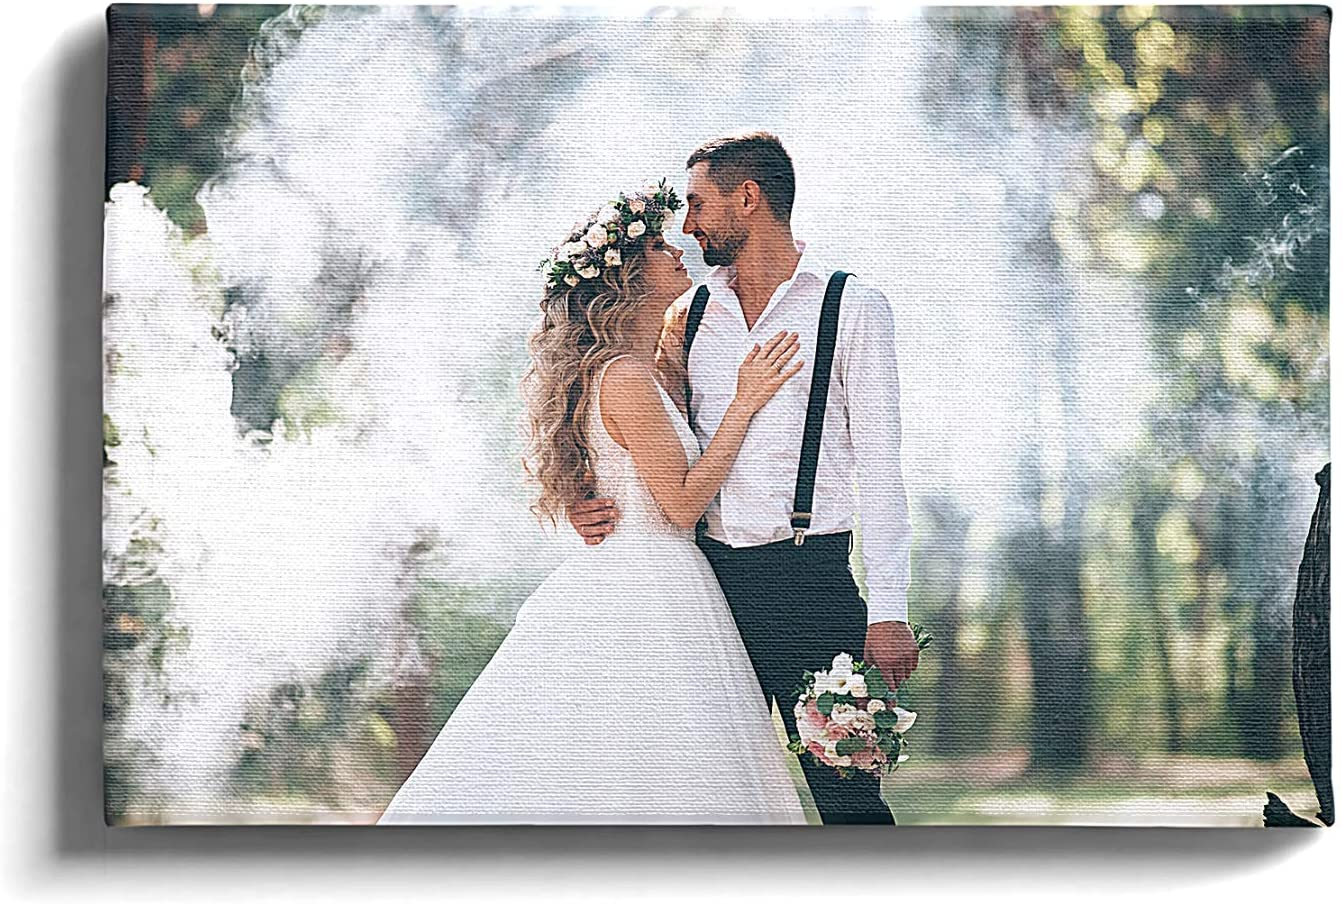 CocoBox - Personalized Photo to Canvas For Wedding | Wall Art Pictures For Home Decor | Customized Gifts For Living Room Bedroom Portraits | Great for Your Favorite Picture Of You And Your Spouse